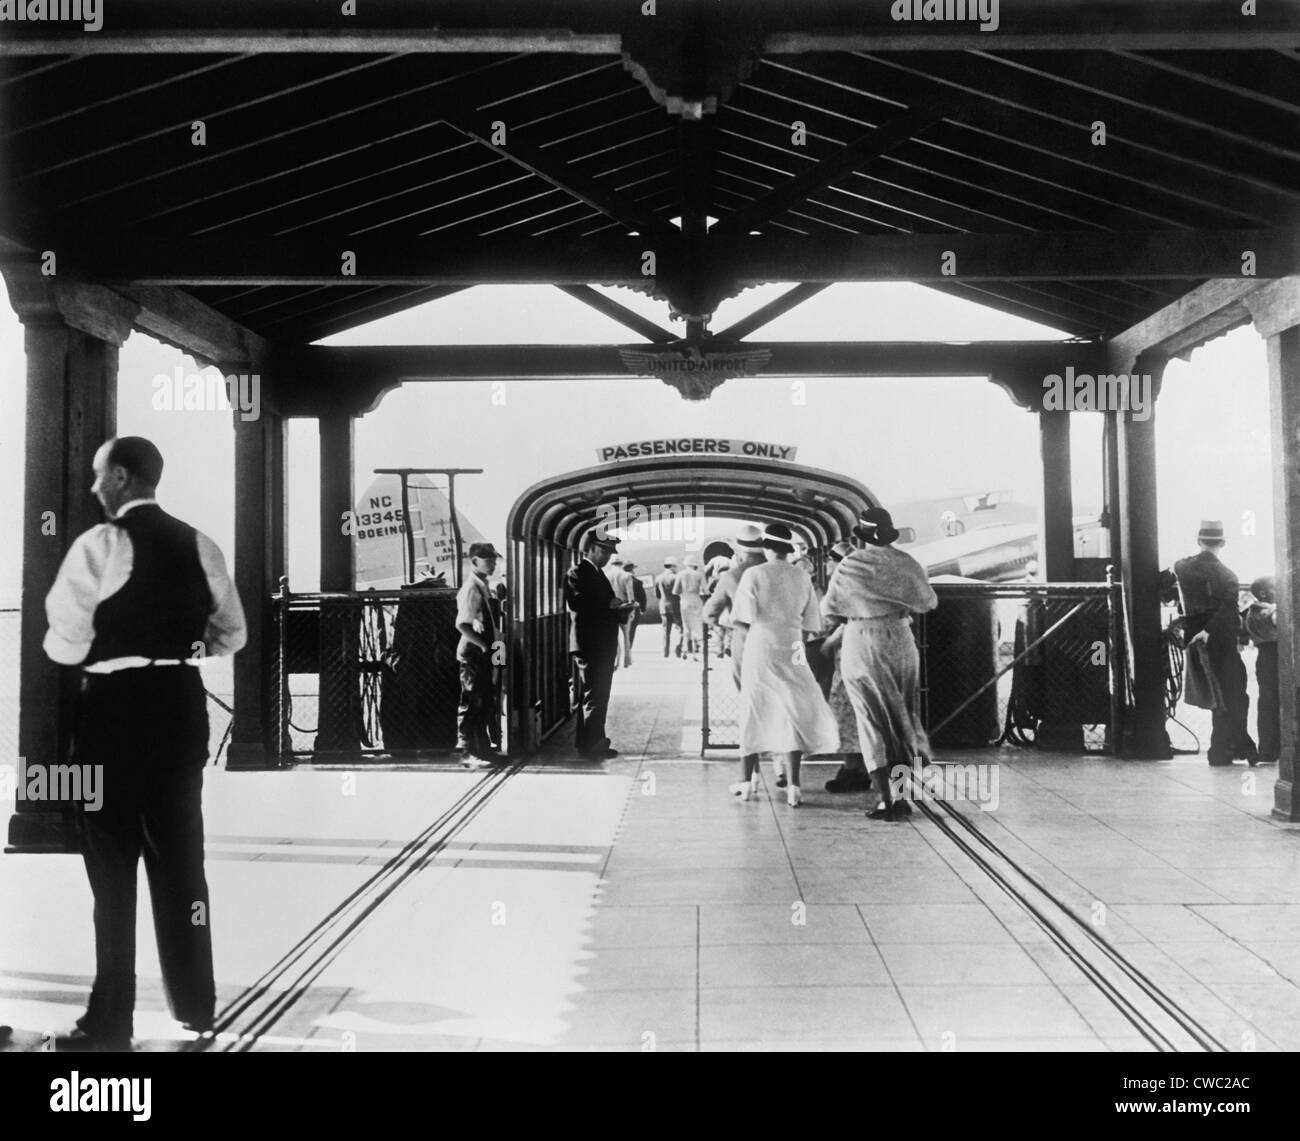 Passengers embark at Washington D.C. area airport in the 1930s. LC-DIG-hec-14557 - Stock Image